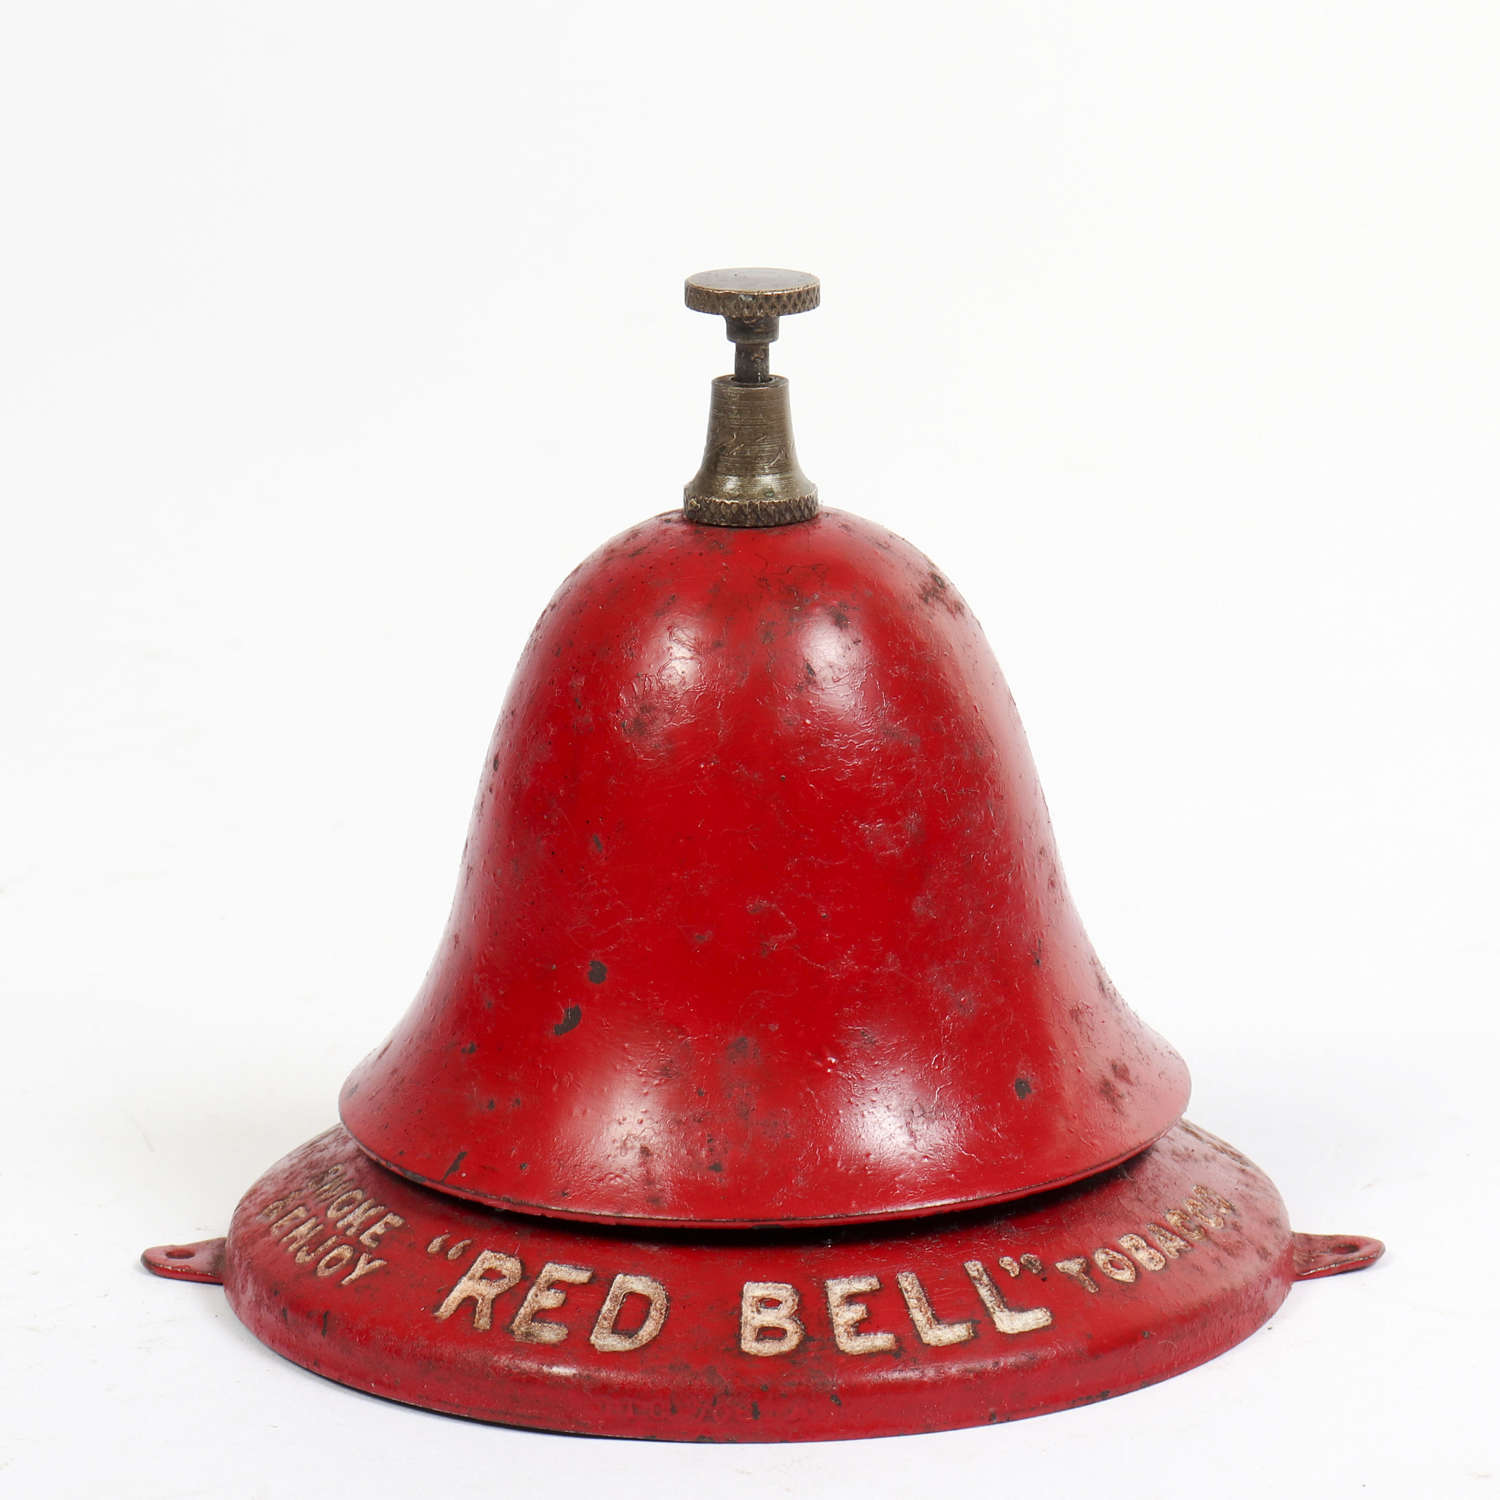 Vintage shop counter bell for Red Bell Tobacco